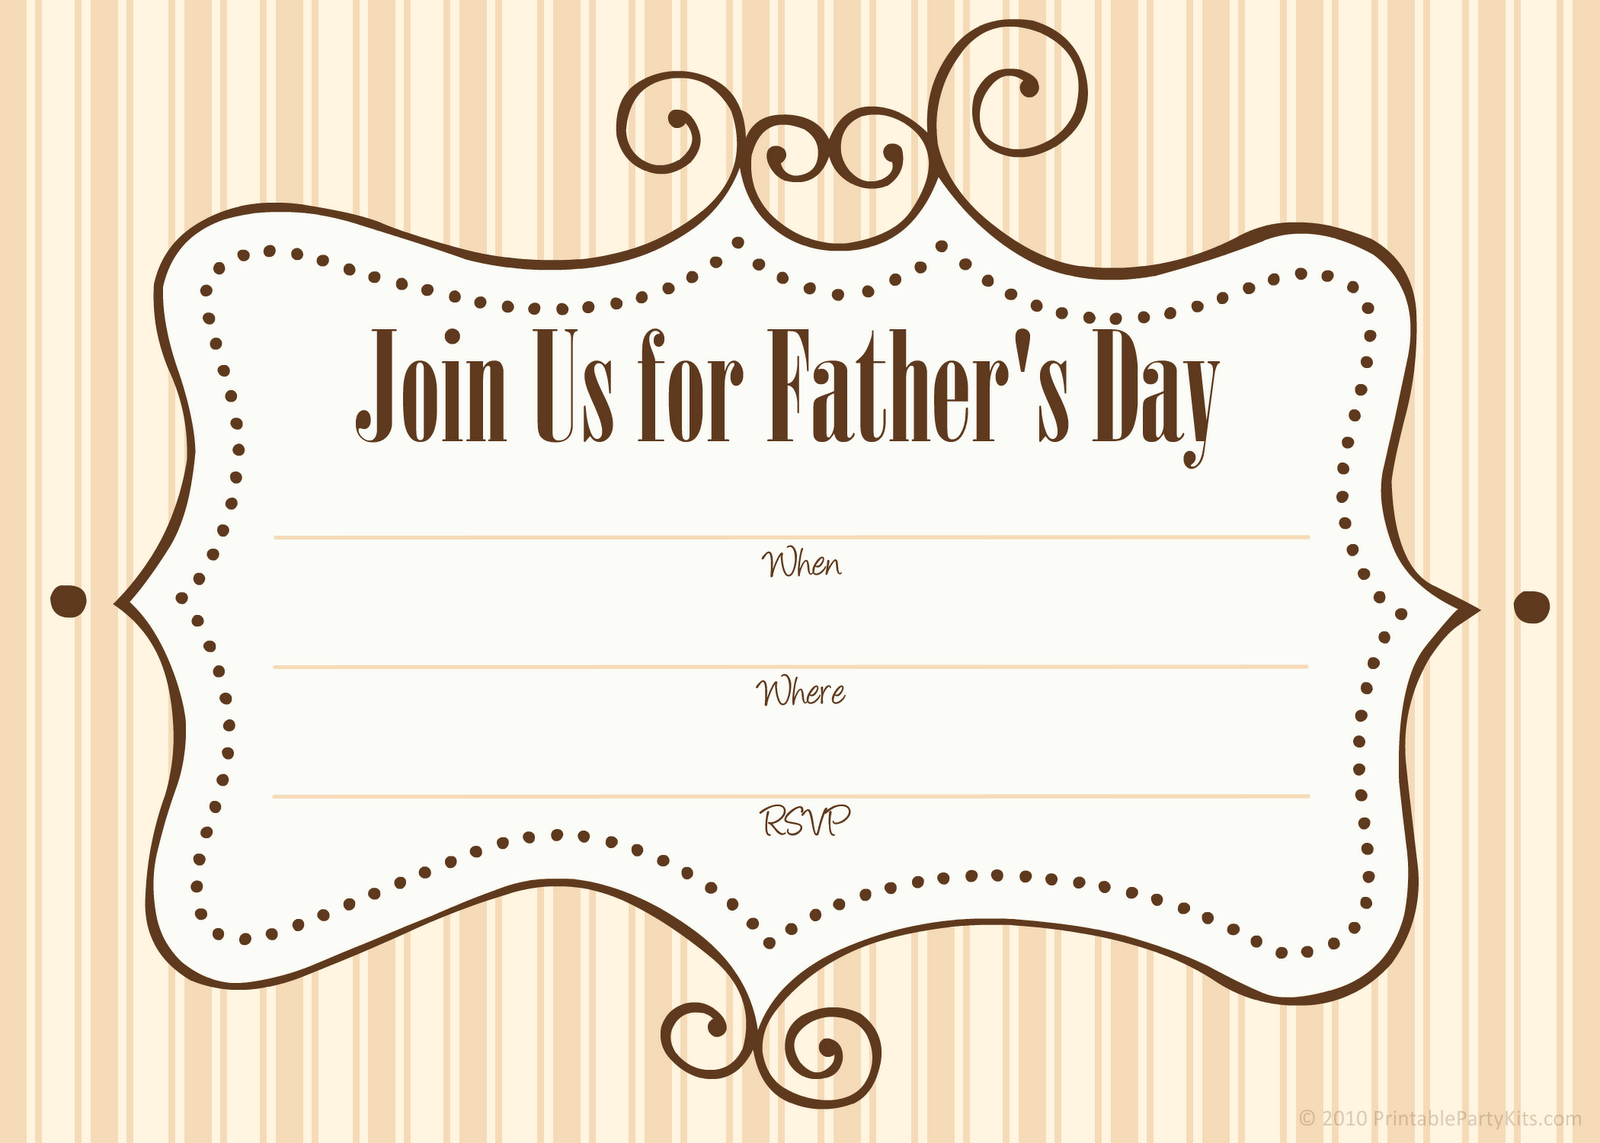 5 X 7 Fathers Day Invitation P Png 1600 1143 Fathers Day Free Printable Party Invitations Party Invitations Printable